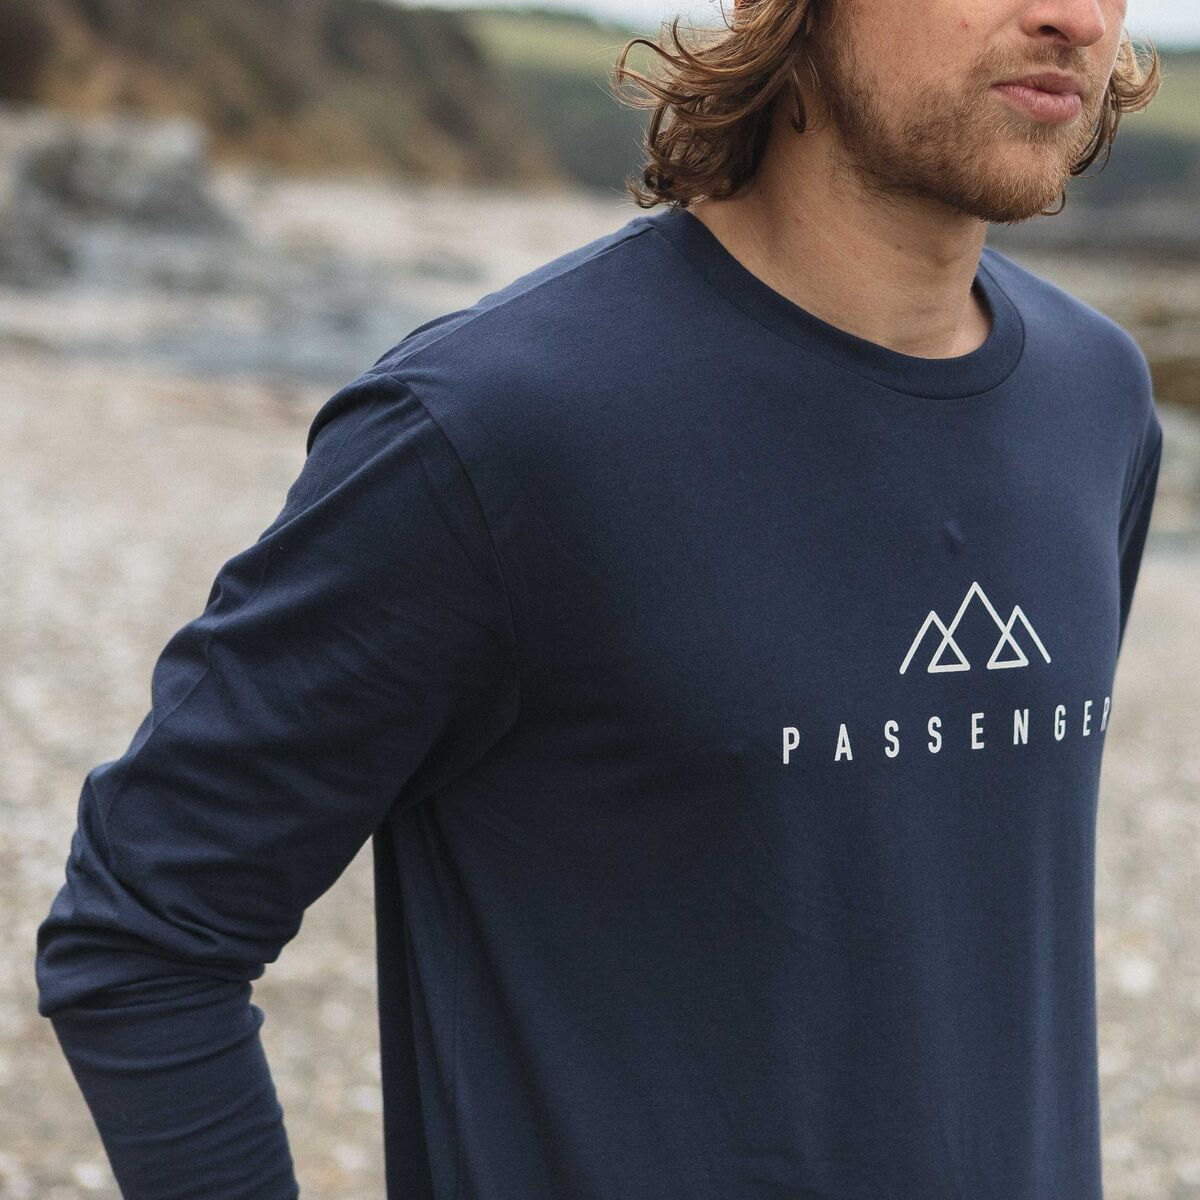 Hatchet  L/S T-Shirt - Navy image 1